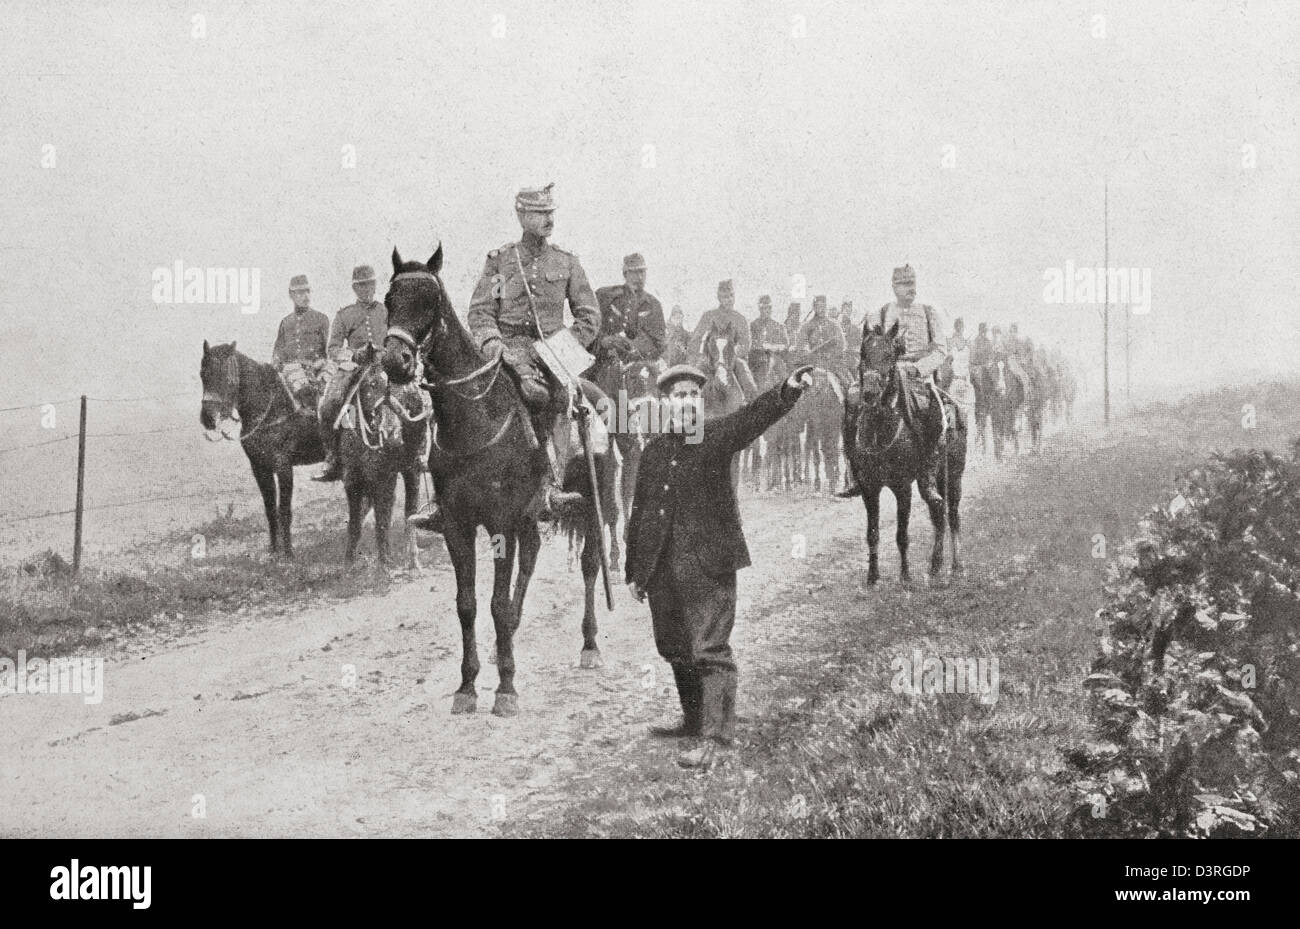 French horsemen in the Somme during the First World War. - Stock Image